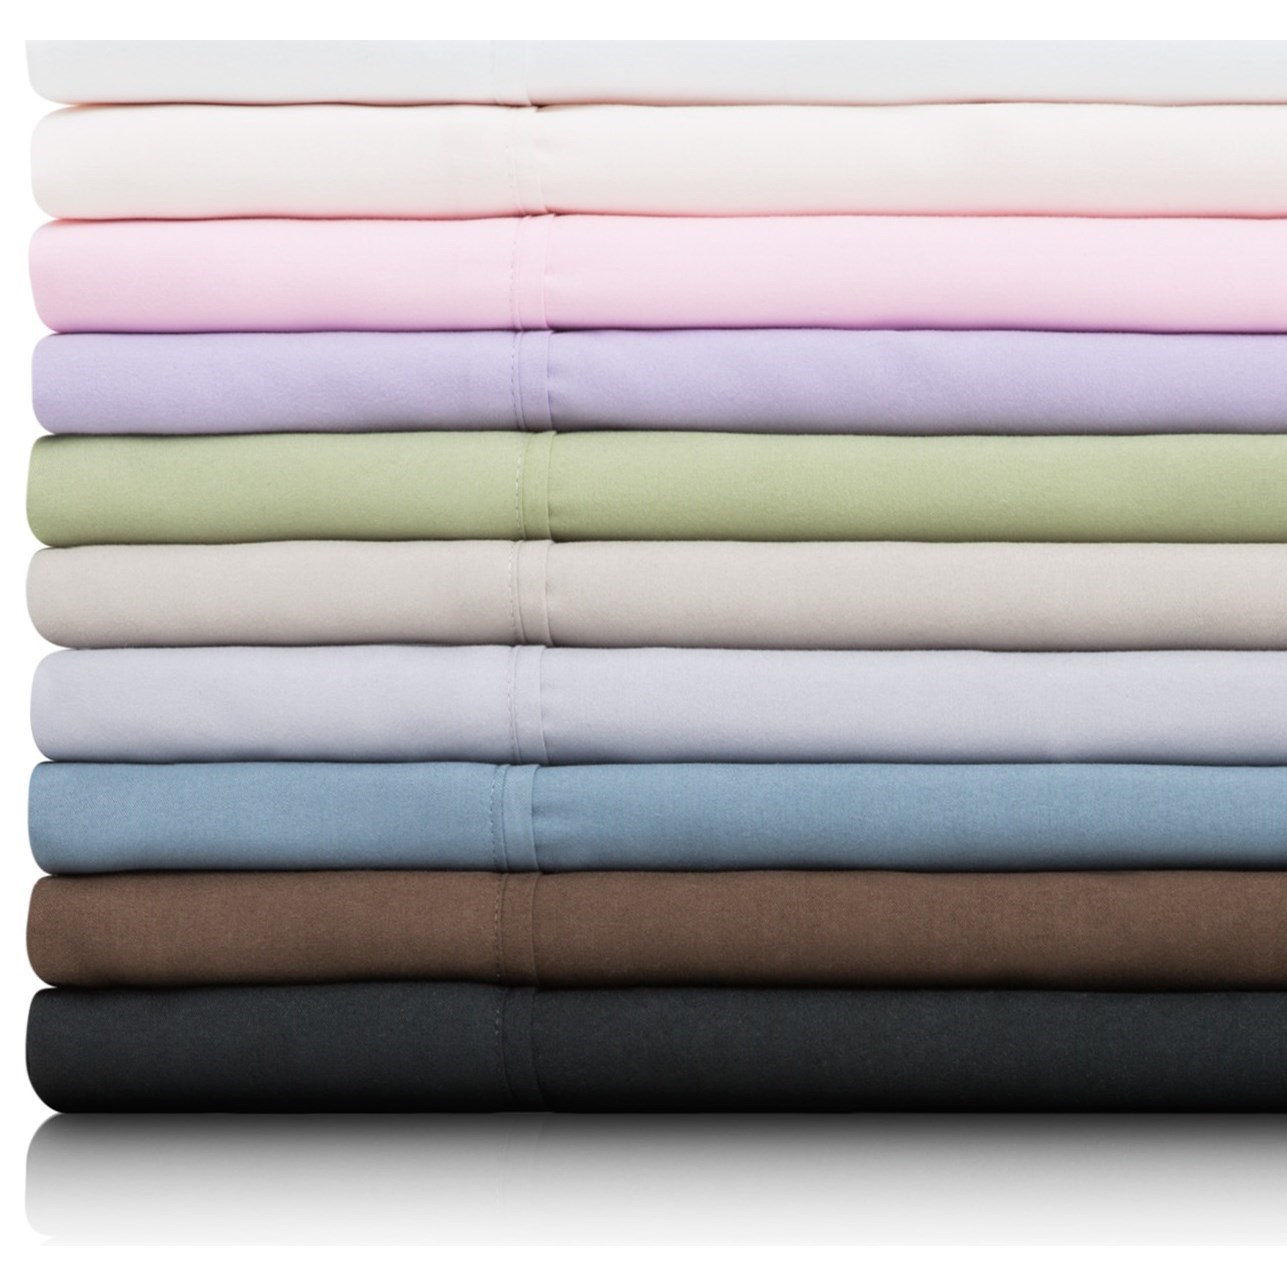 Malouf Brushed Microfiber Split Queen Woven™ Brushed Microfiber Sheet  - Item Number: MA90SQLIMS